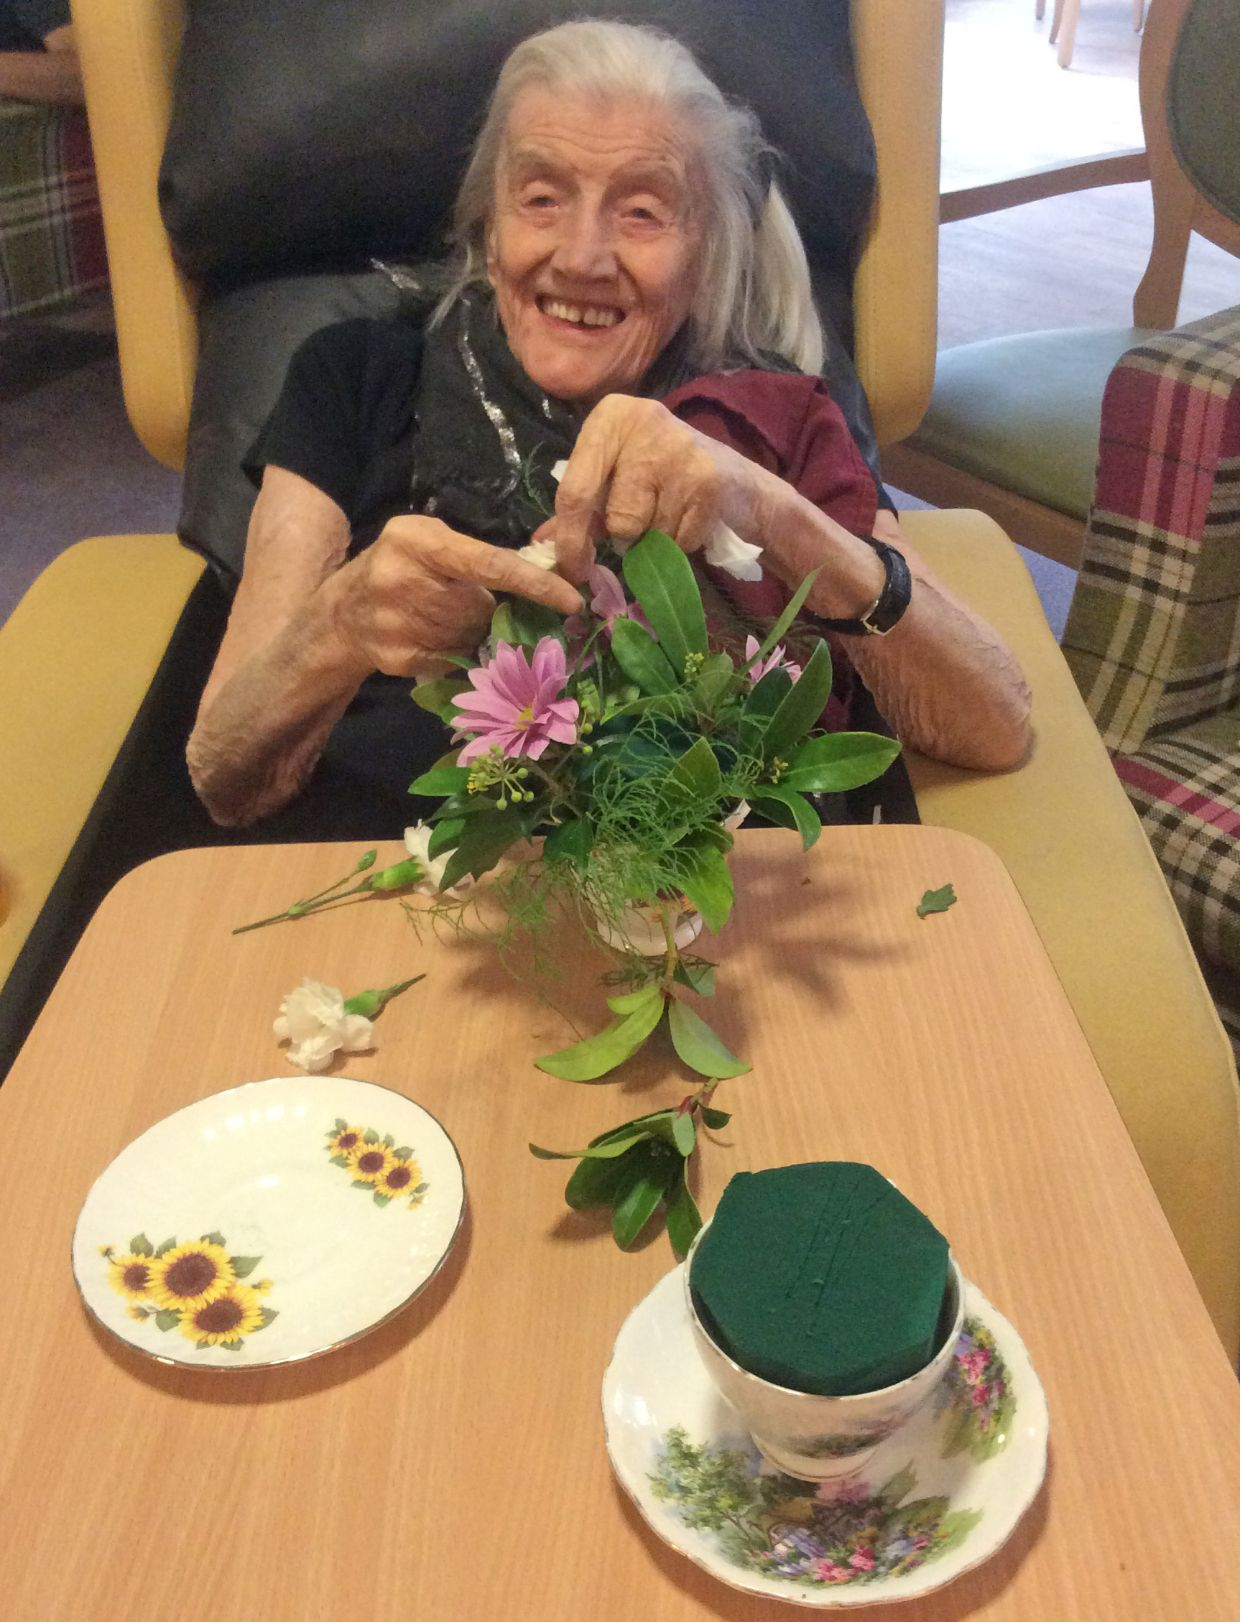 Highfileds Care Home in Nottinghamshire spent the day learning how to flower arrange